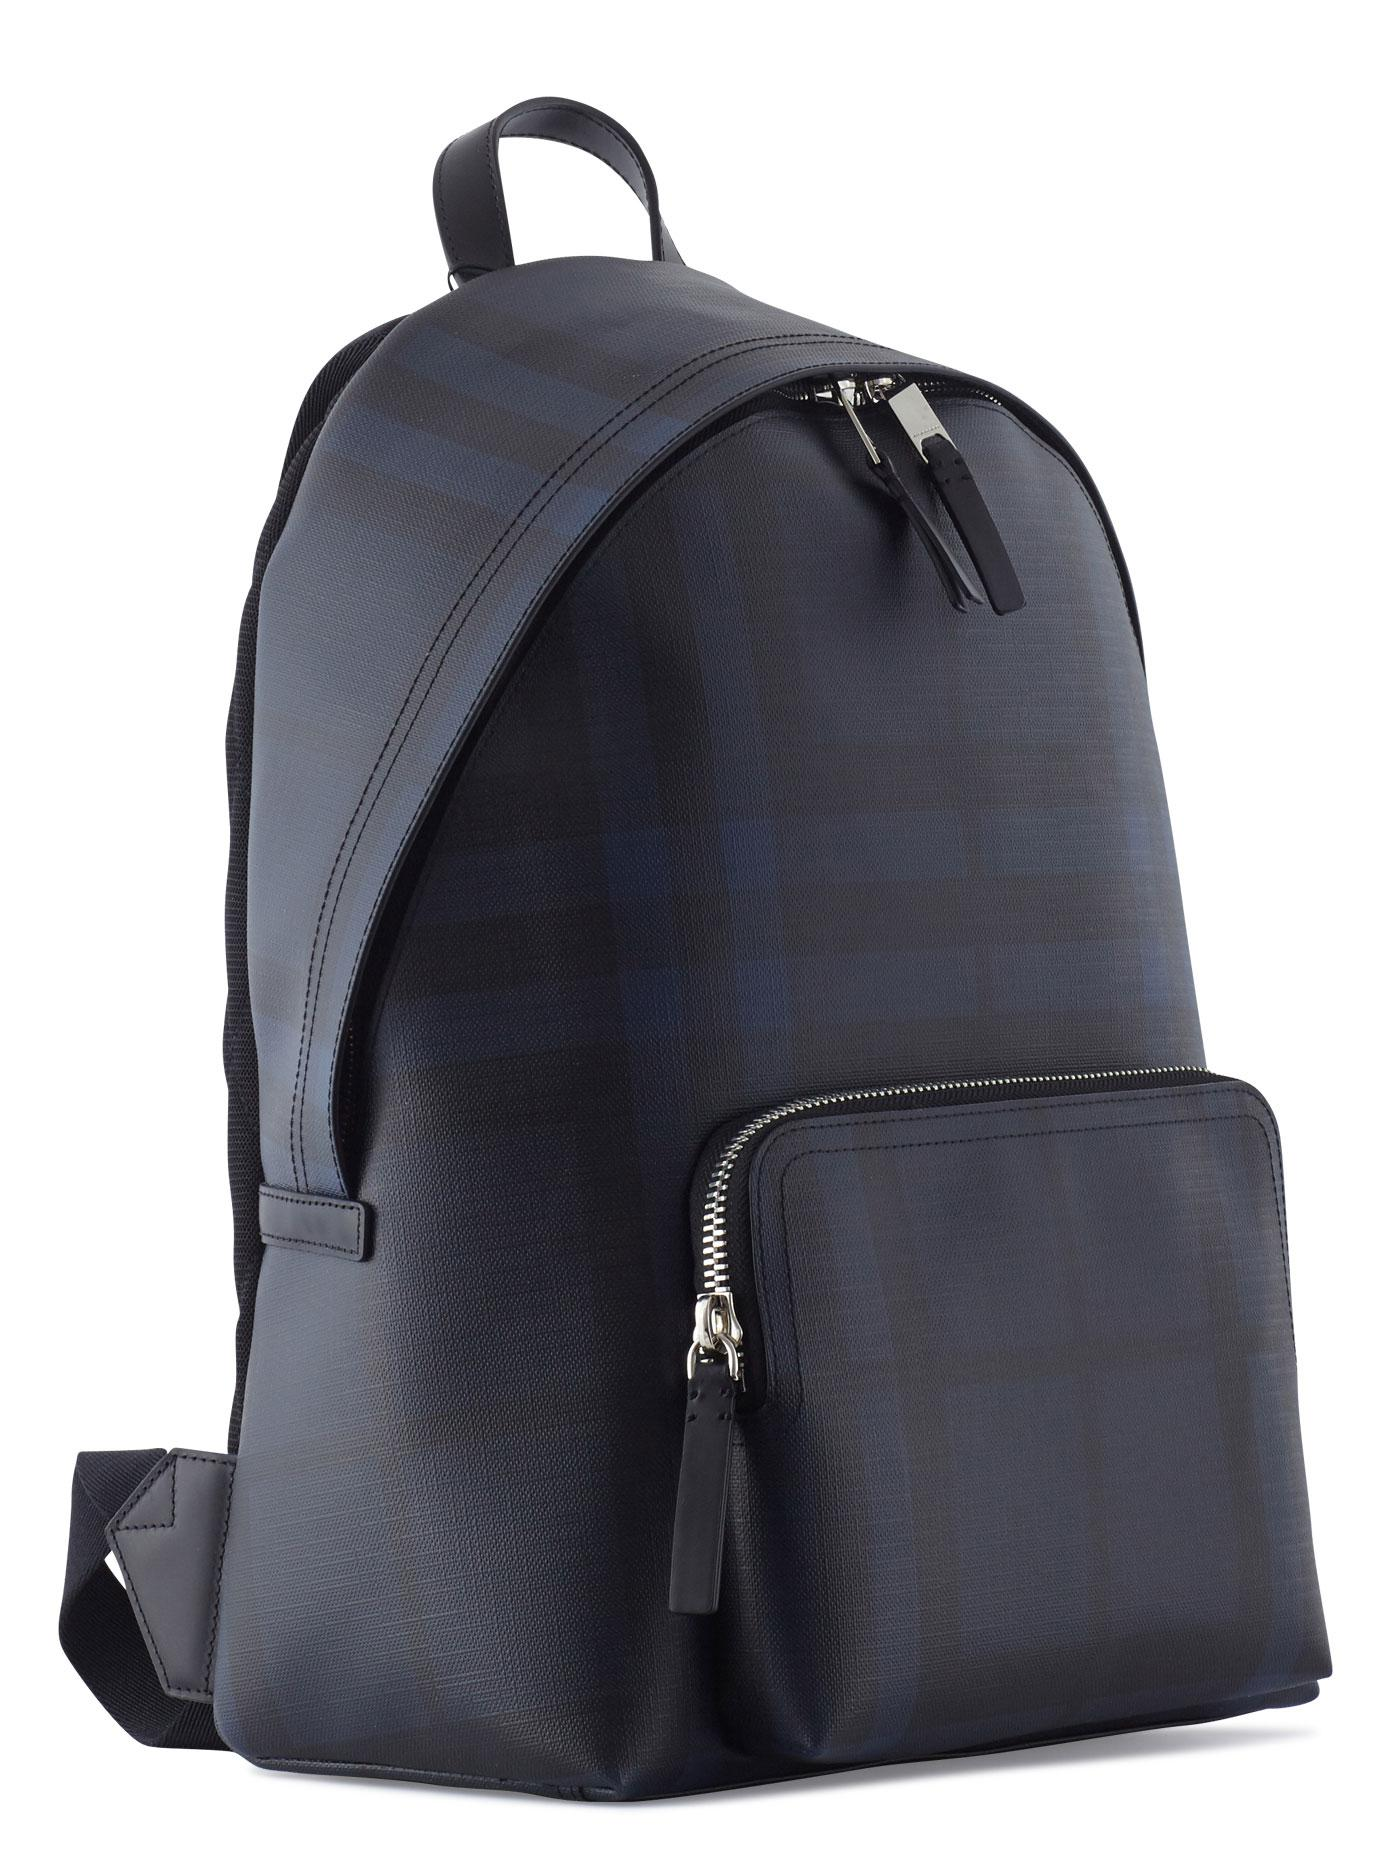 Burberry Leather Abbeydale Backpack in Blue/Checked (Blue) for Men